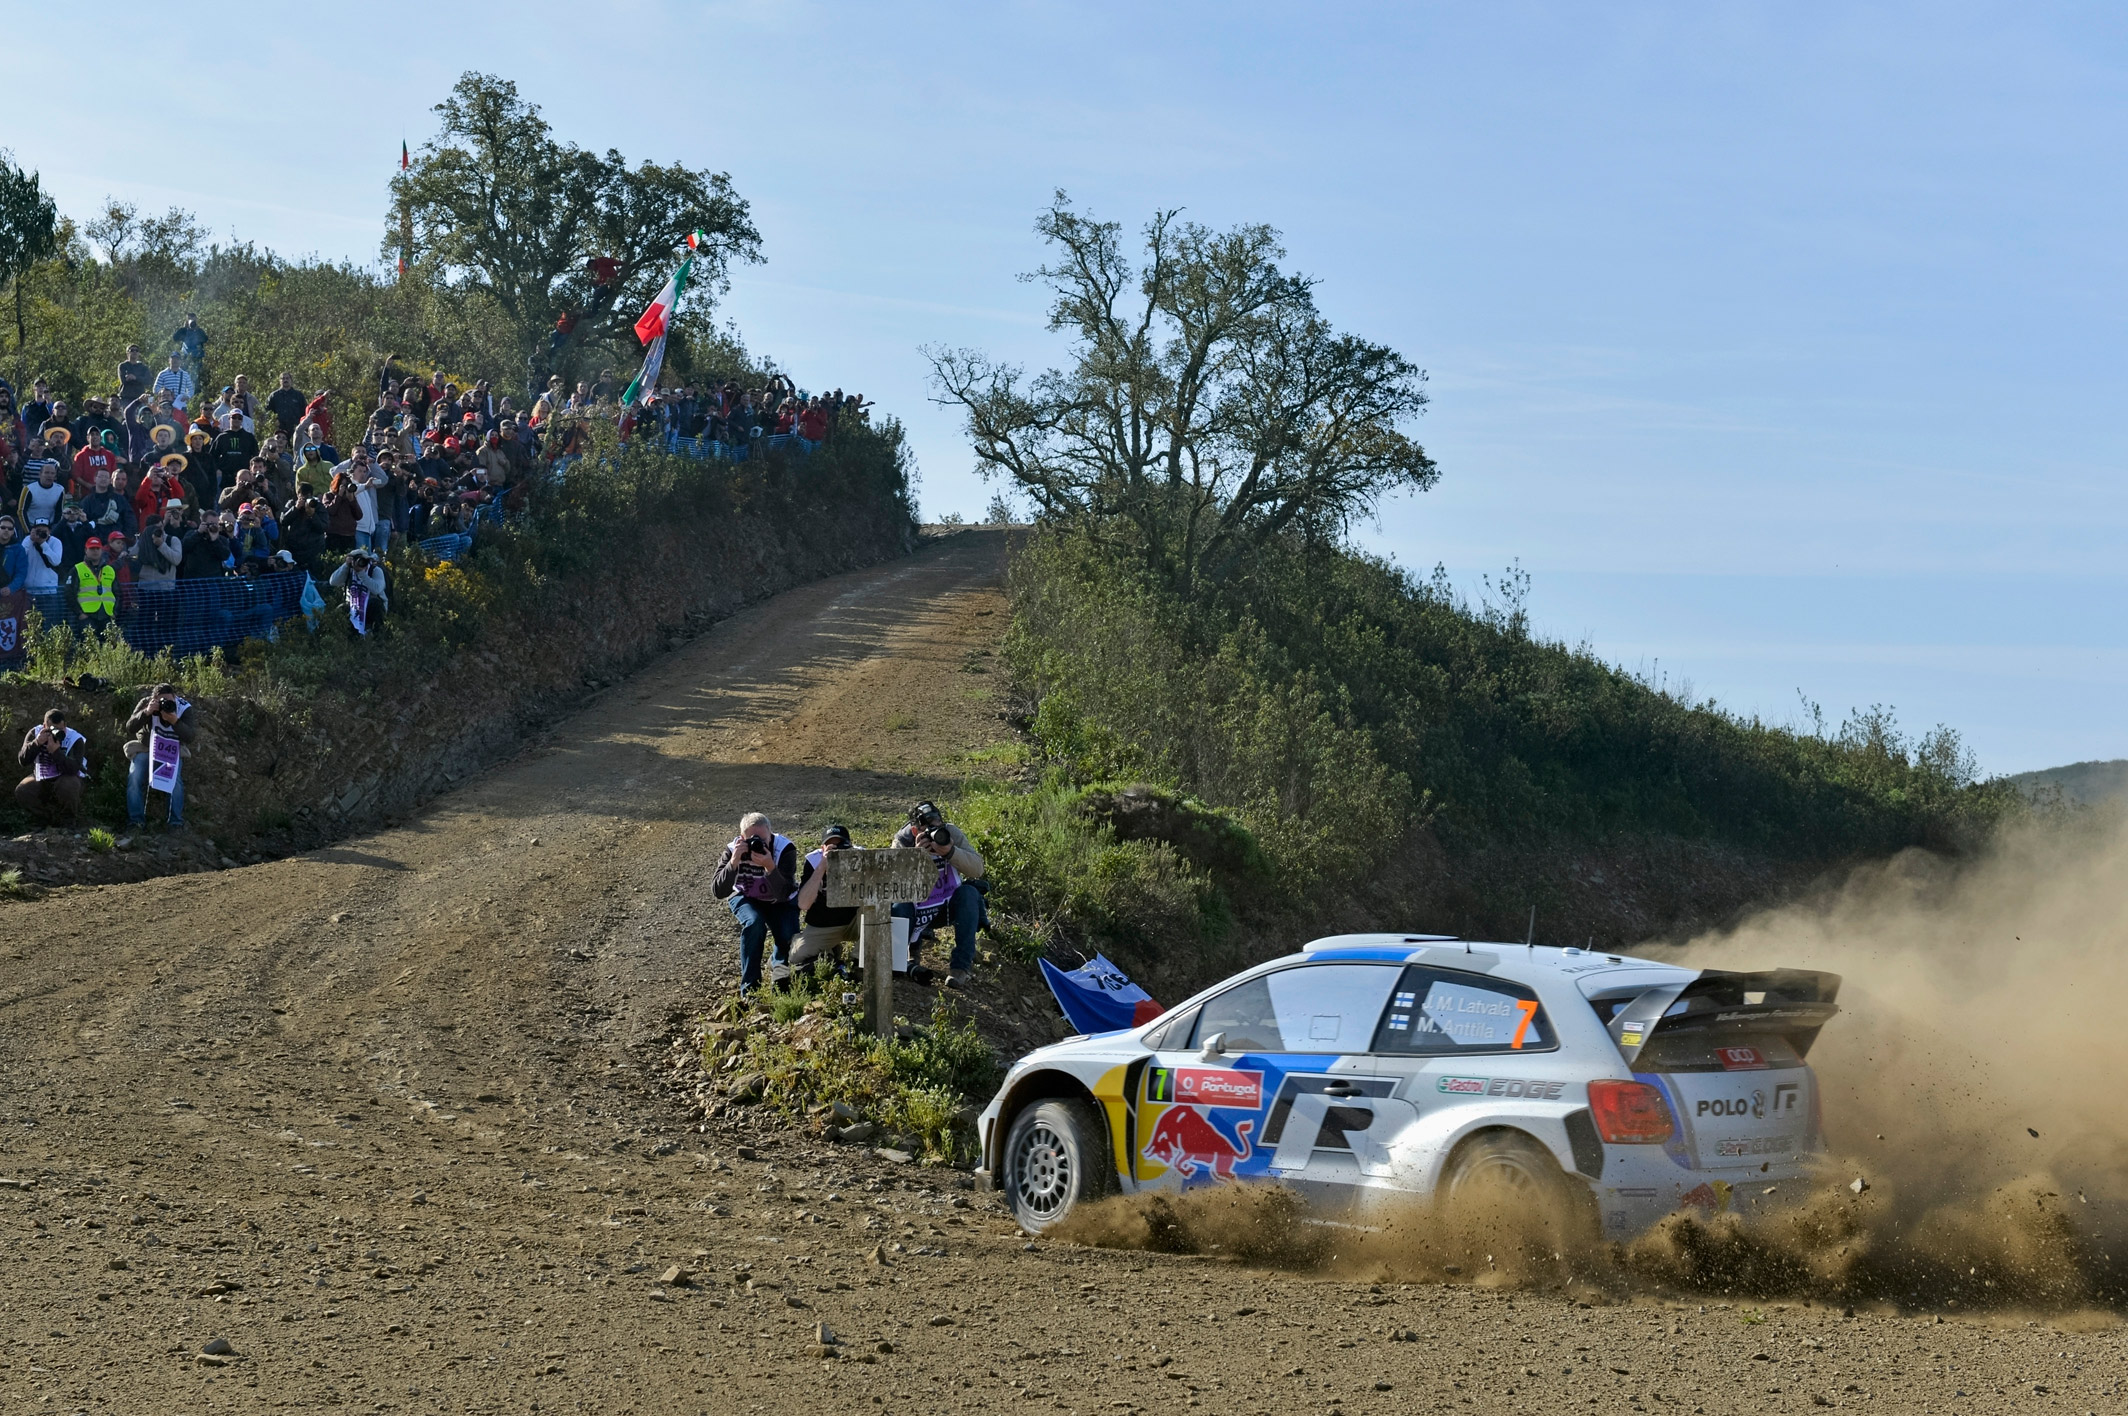 vw-polo-wrc-portugal-2013-2